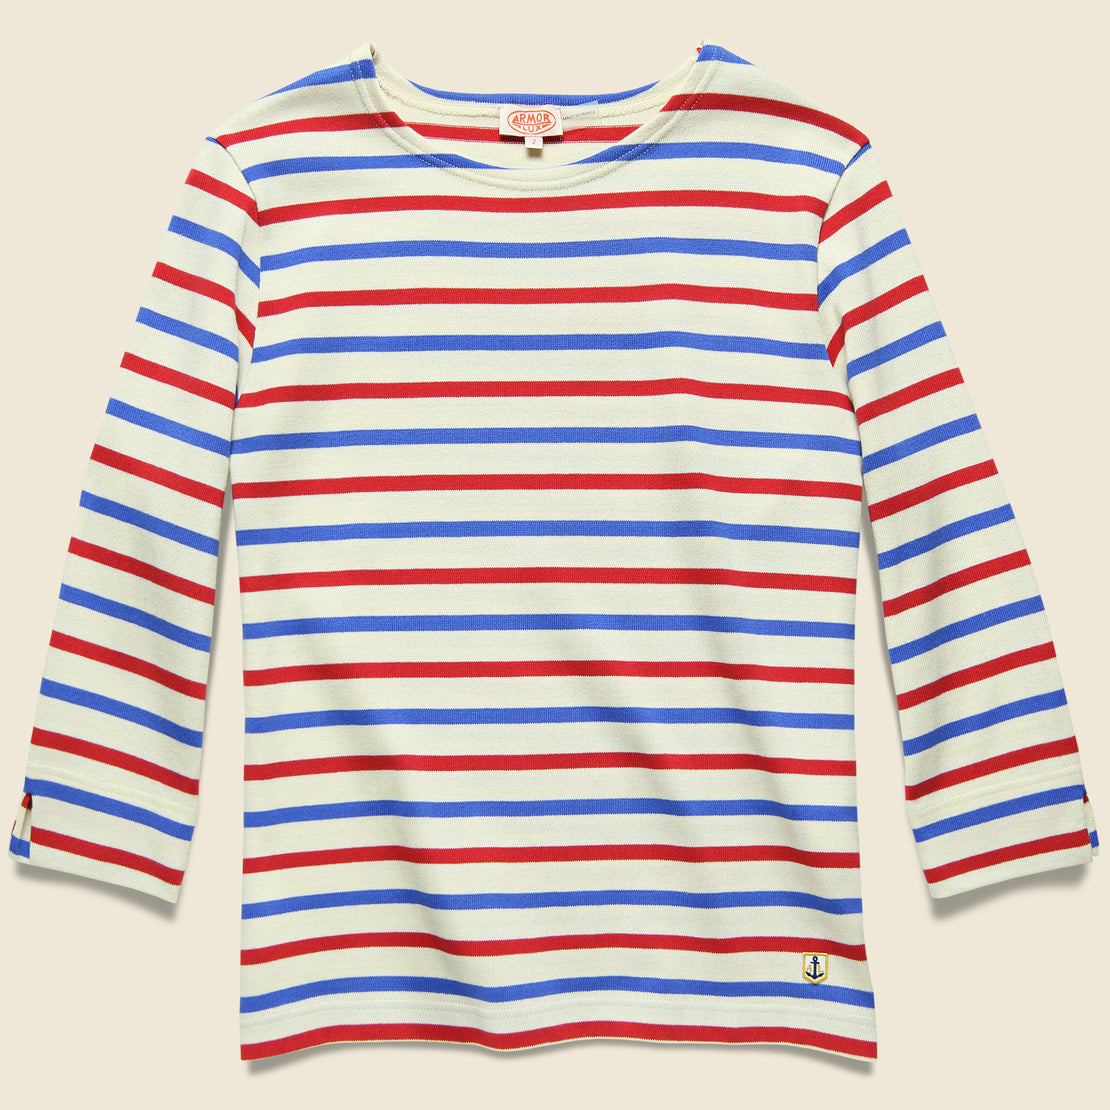 Armor Lux 3/4 Sleeve Marine Stripe Top - Natural/Red/Blue